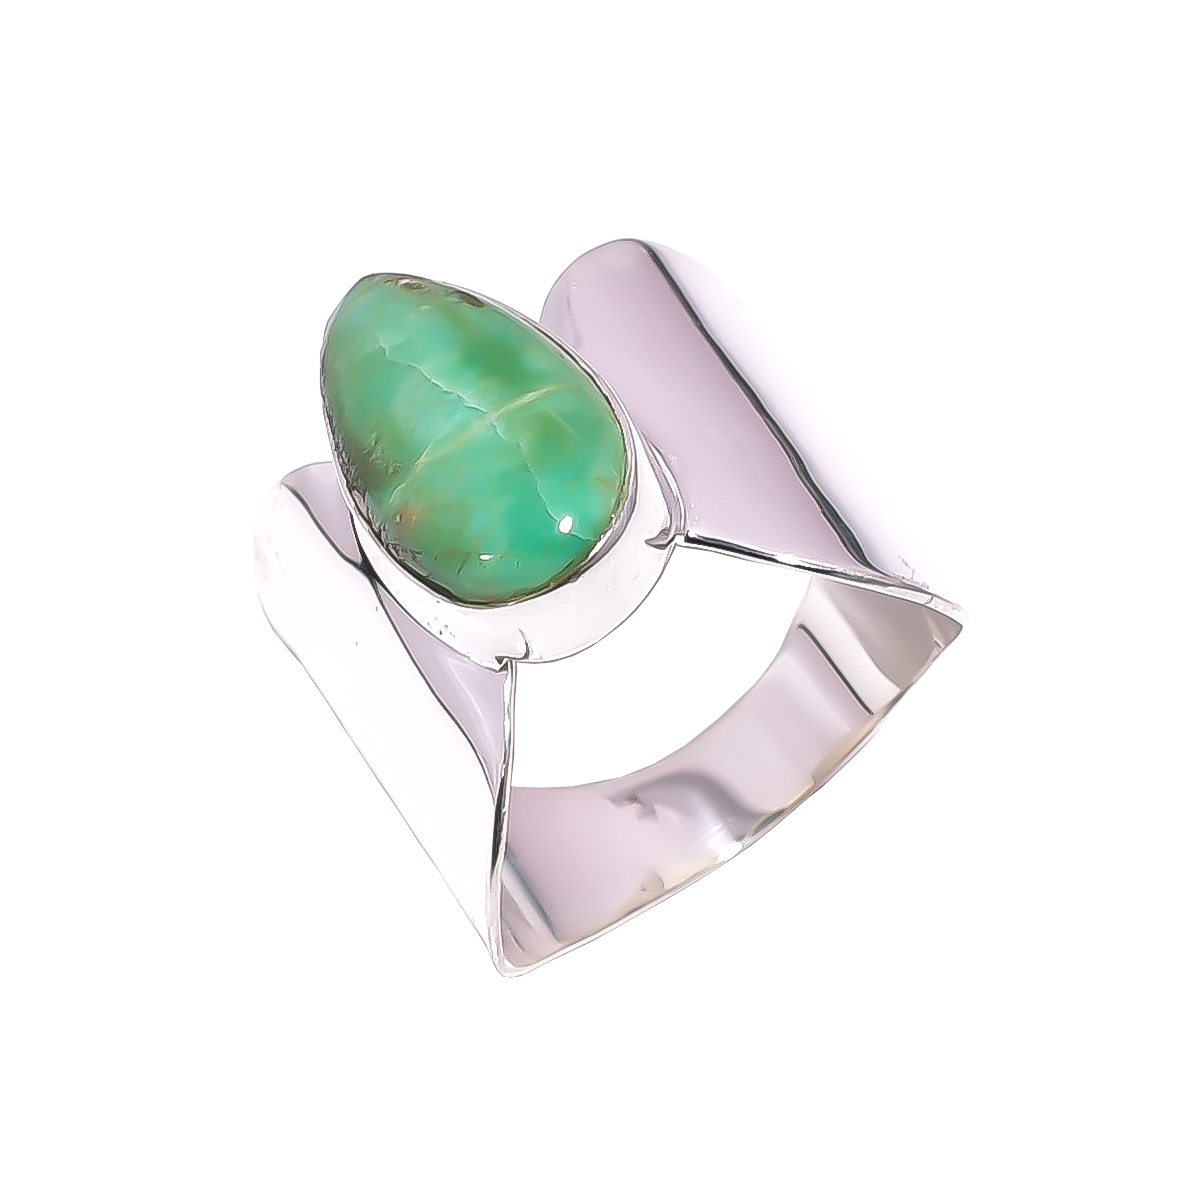 Variscite Gemstone 925 Sterling Silver Ring Size US 10